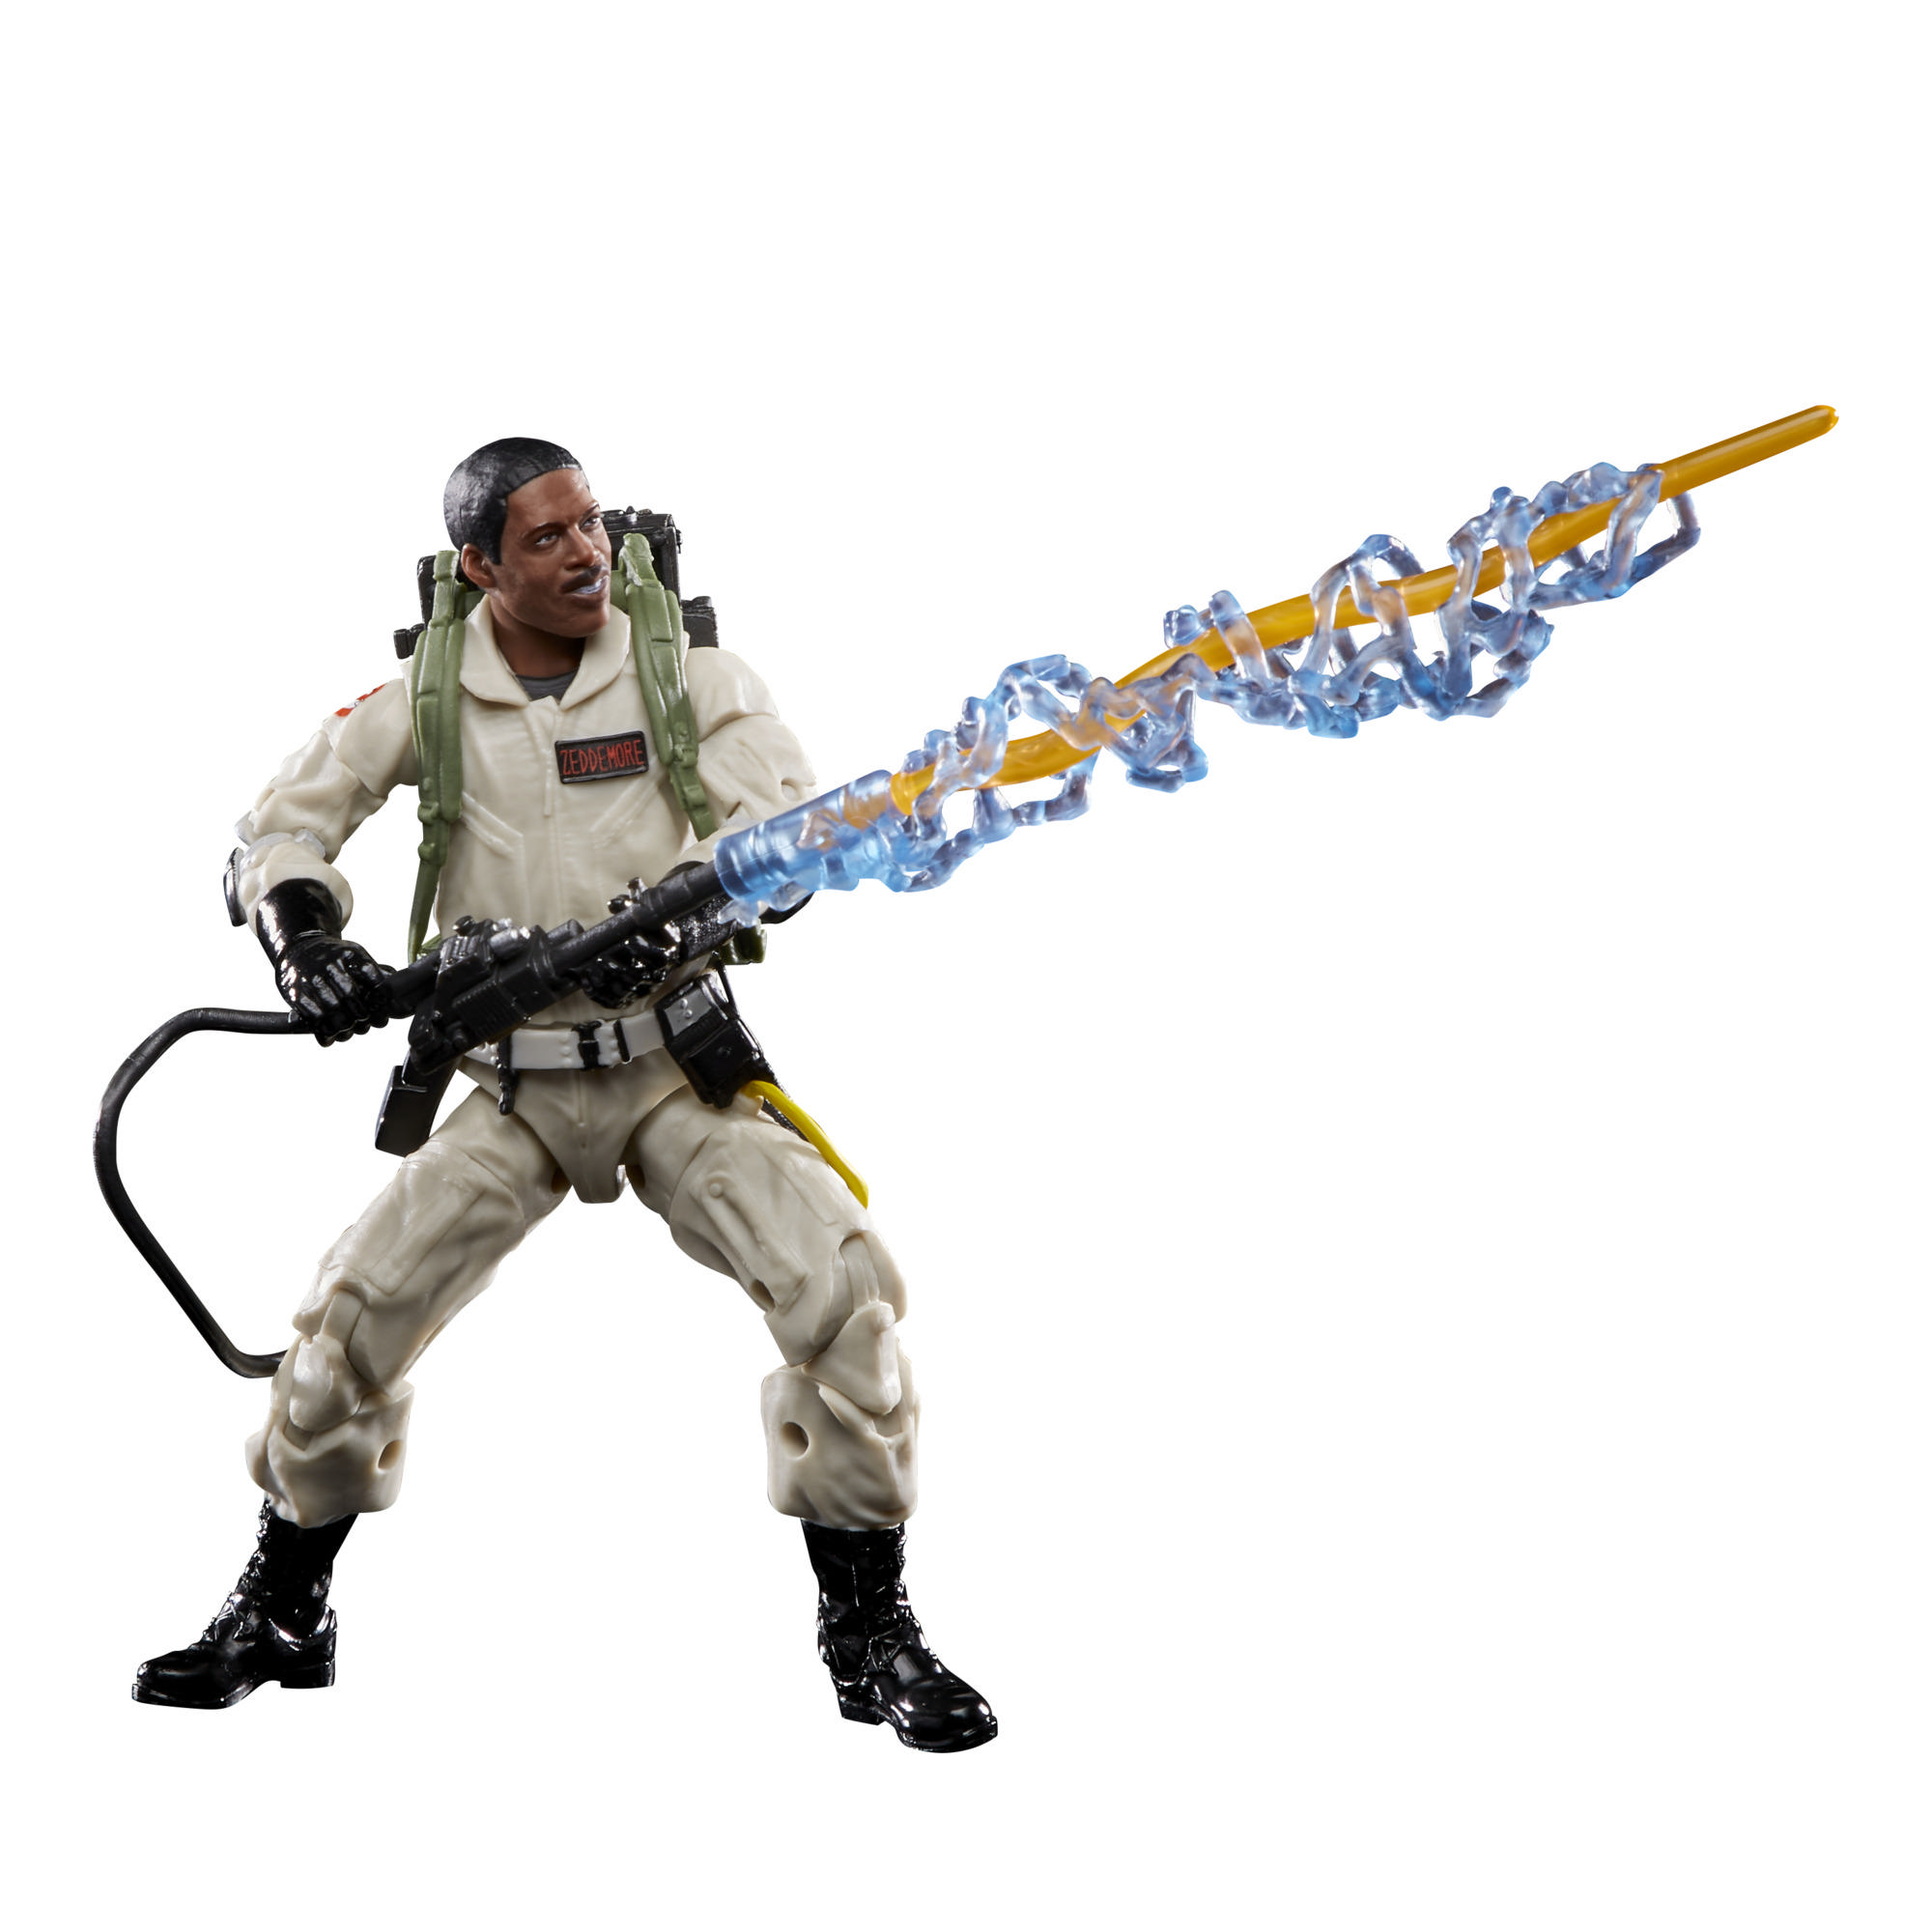 Ghostbusters Plasma Series Winston Zeddemore Toy 6-Inch-Scale Collectible Classic 1984 Ghostbusters Figure, Kids Ages 4 and Up